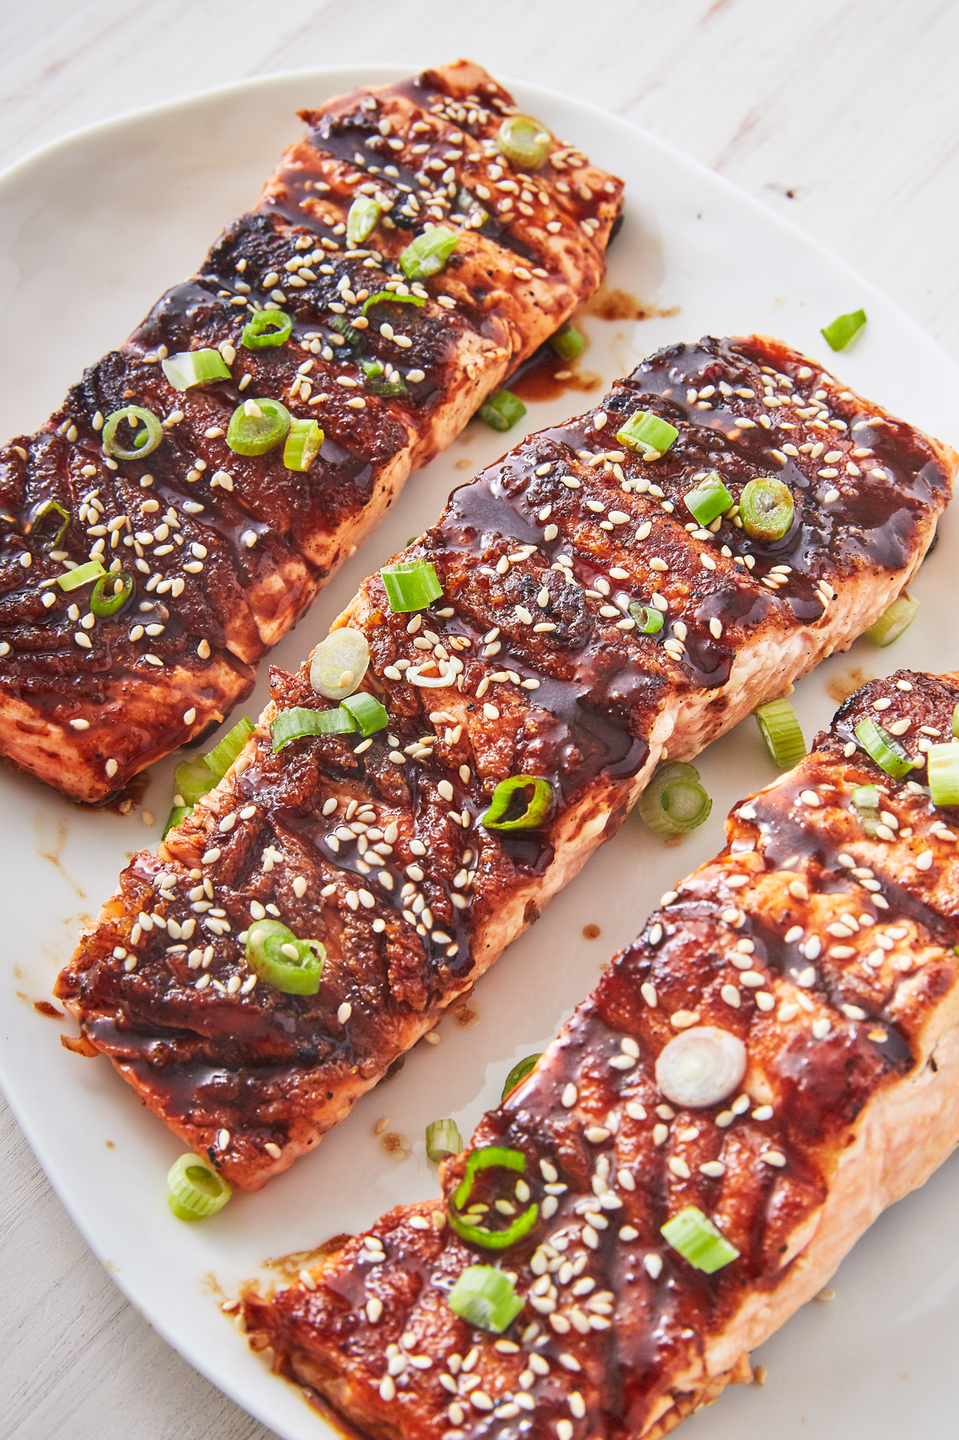 """<p>This spicy Asian glaze will make you forget all about regular BBQ sauce.</p><p>Get the recipe from <a href=""""https://www.delish.com/cooking/recipe-ideas/recipes/a53482/best-bbq-salmon-recipe/"""" rel=""""nofollow noopener"""" target=""""_blank"""" data-ylk=""""slk:Delish"""" class=""""link rapid-noclick-resp"""">Delish</a>.</p>"""